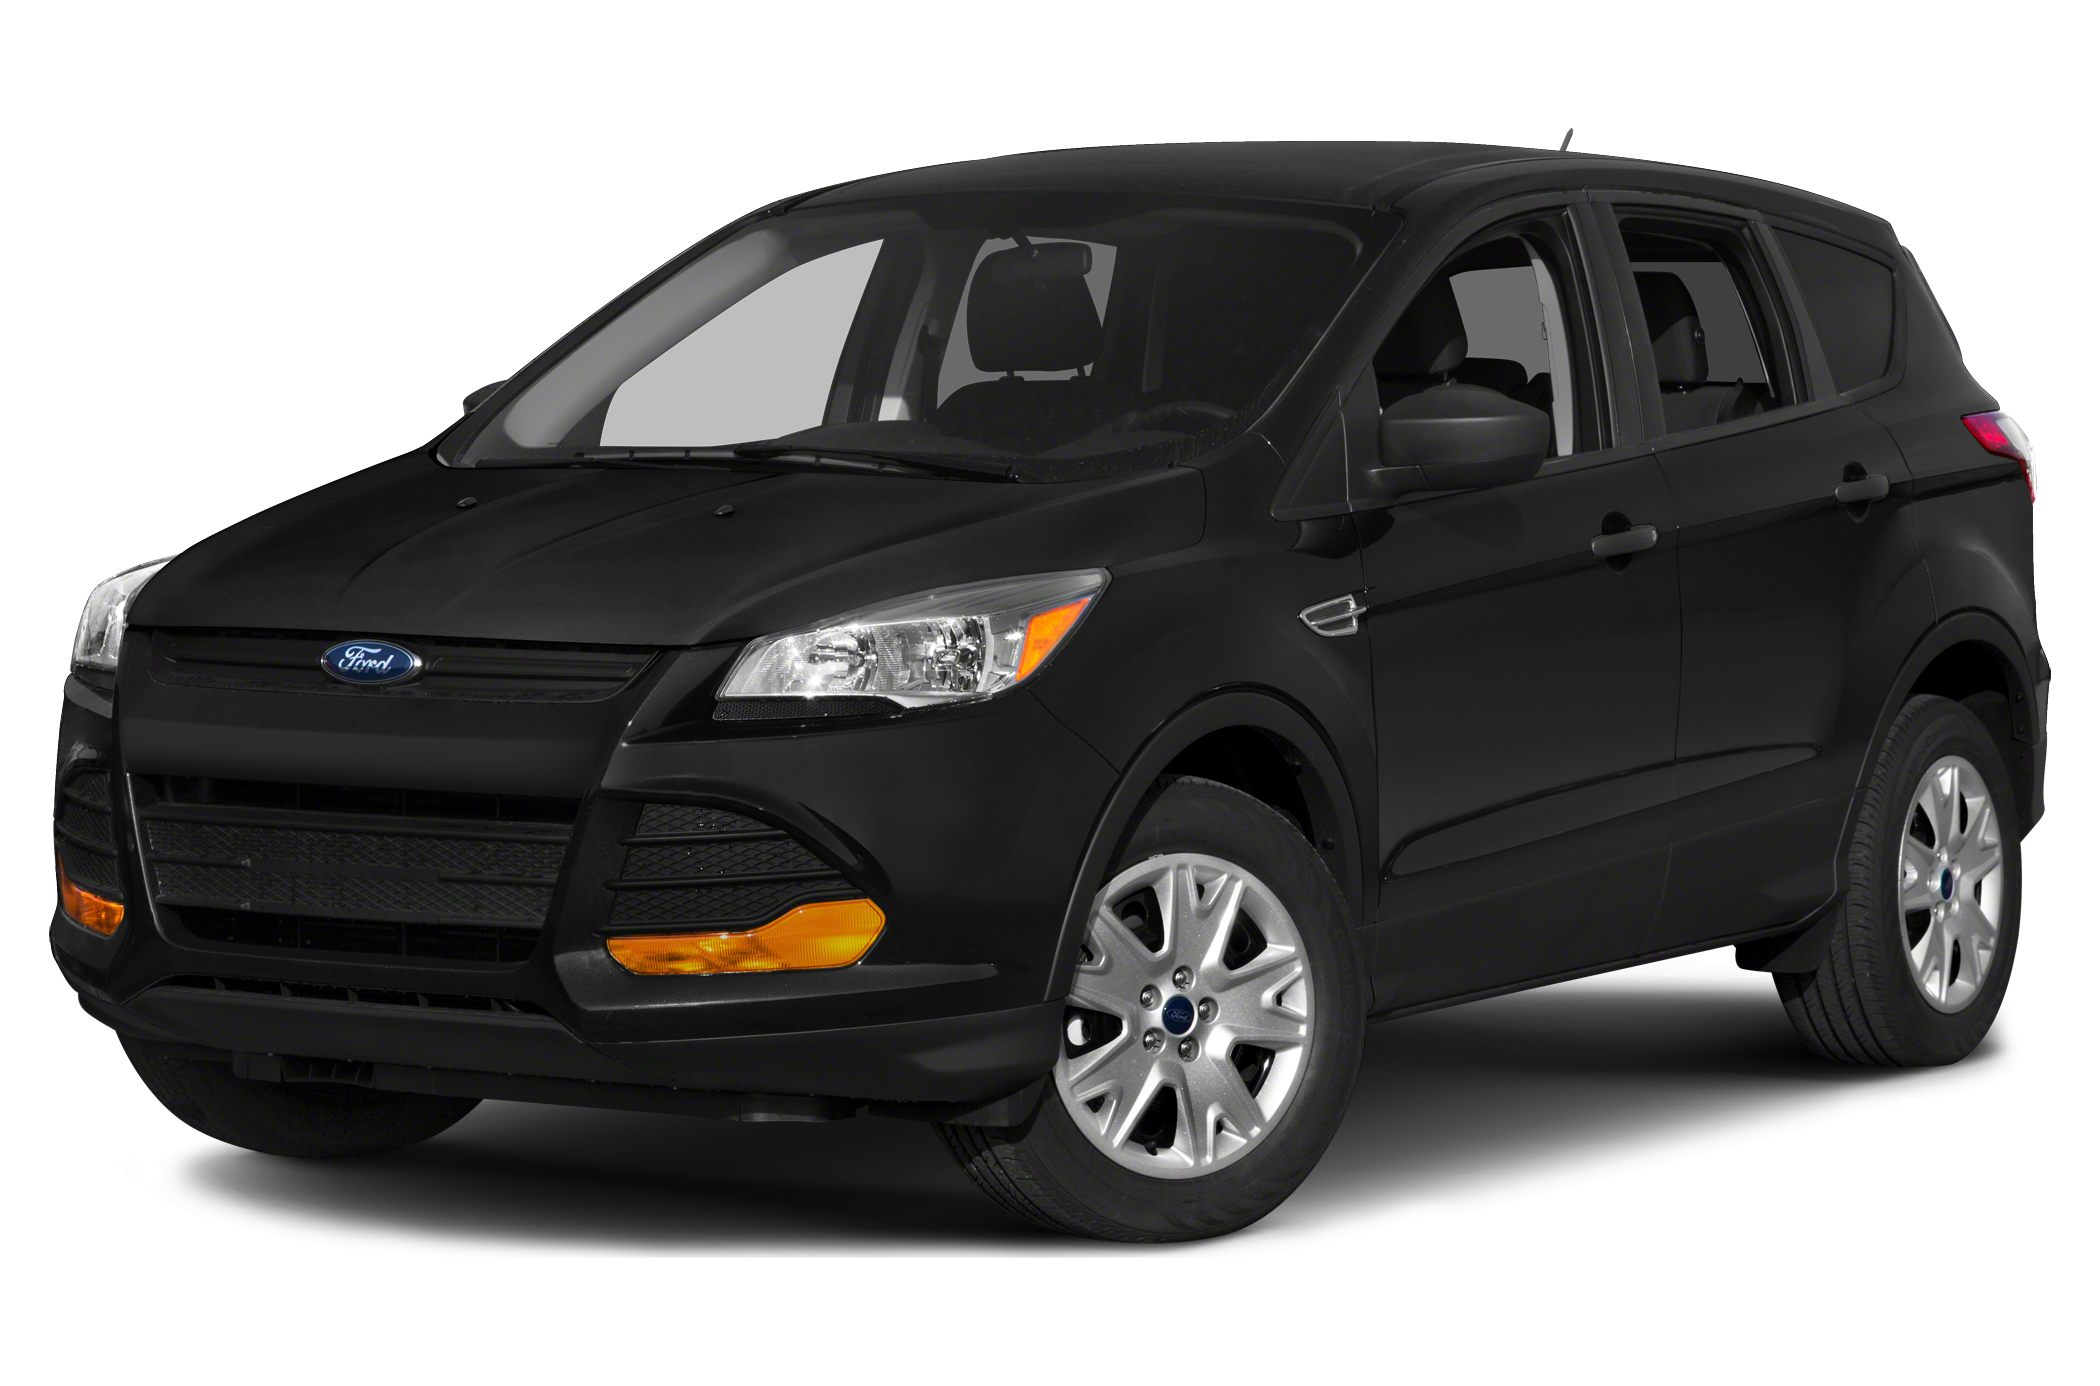 2015 Ford Escape S SUV for sale in McHenry for $23,855 with 2 miles.